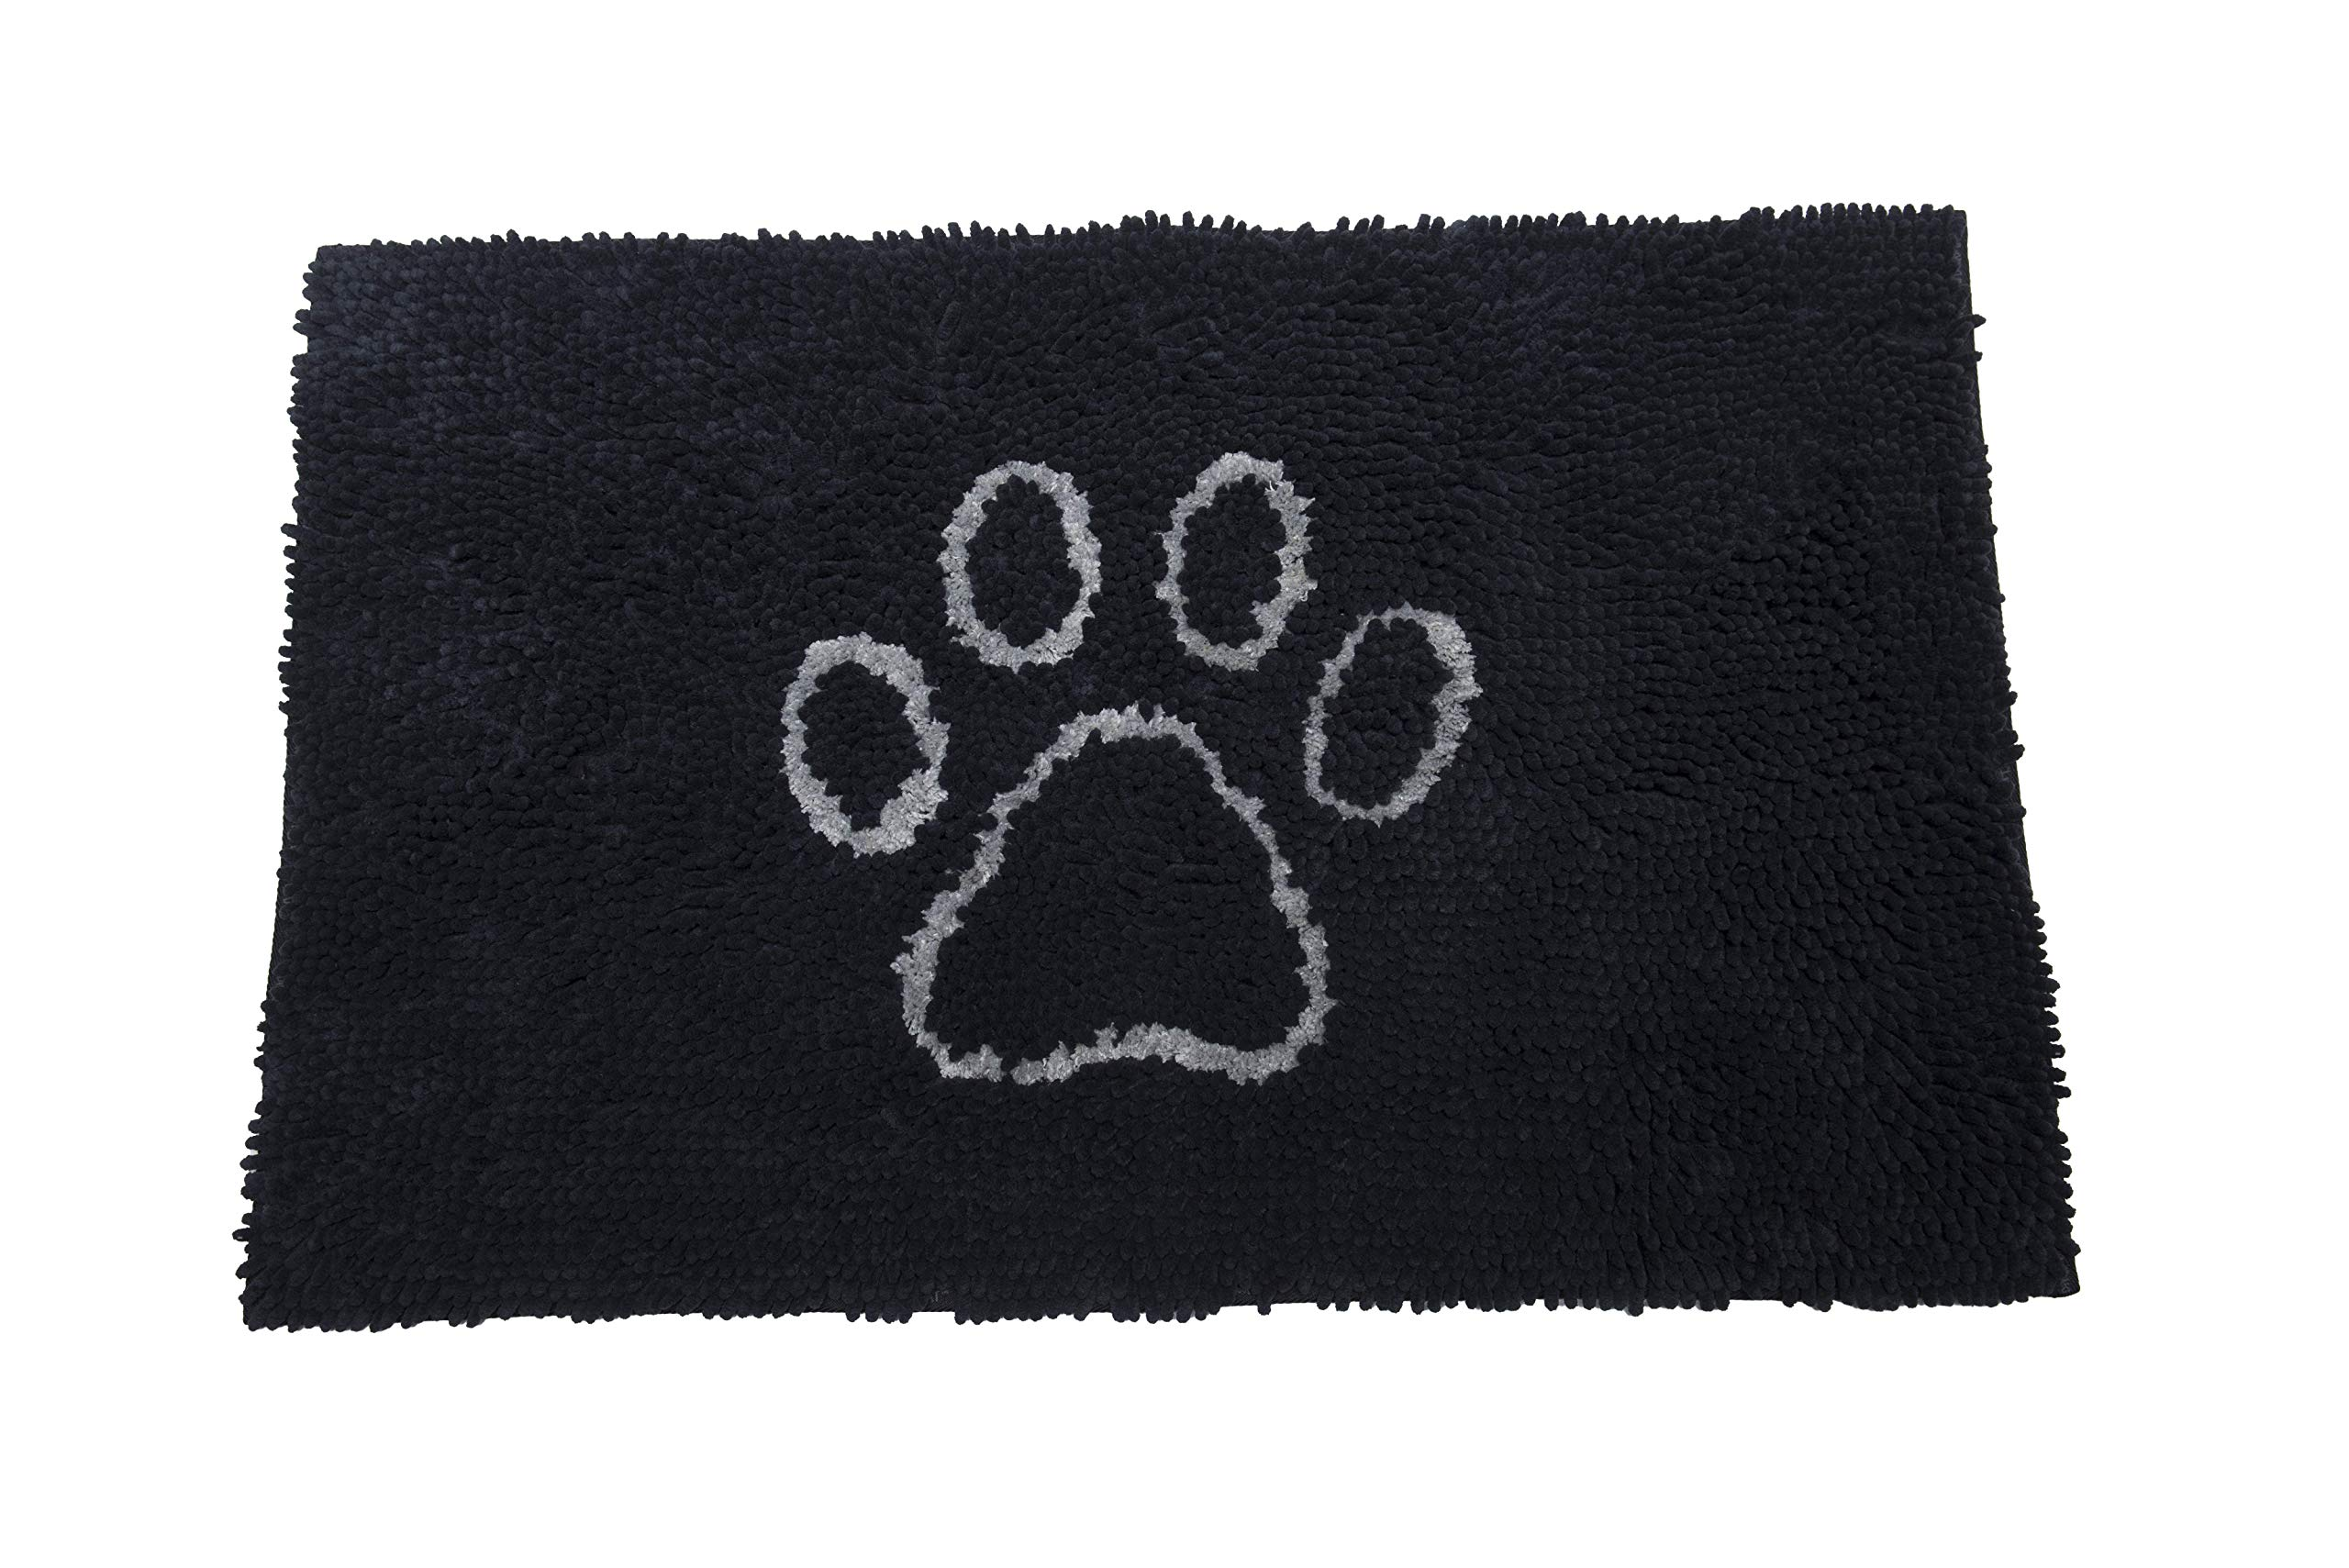 Dog Gone Smart Pet Products Dirty Dog Doormat, Large, Black Hue W/Light Grey by Dog Gone Smart Pet Products